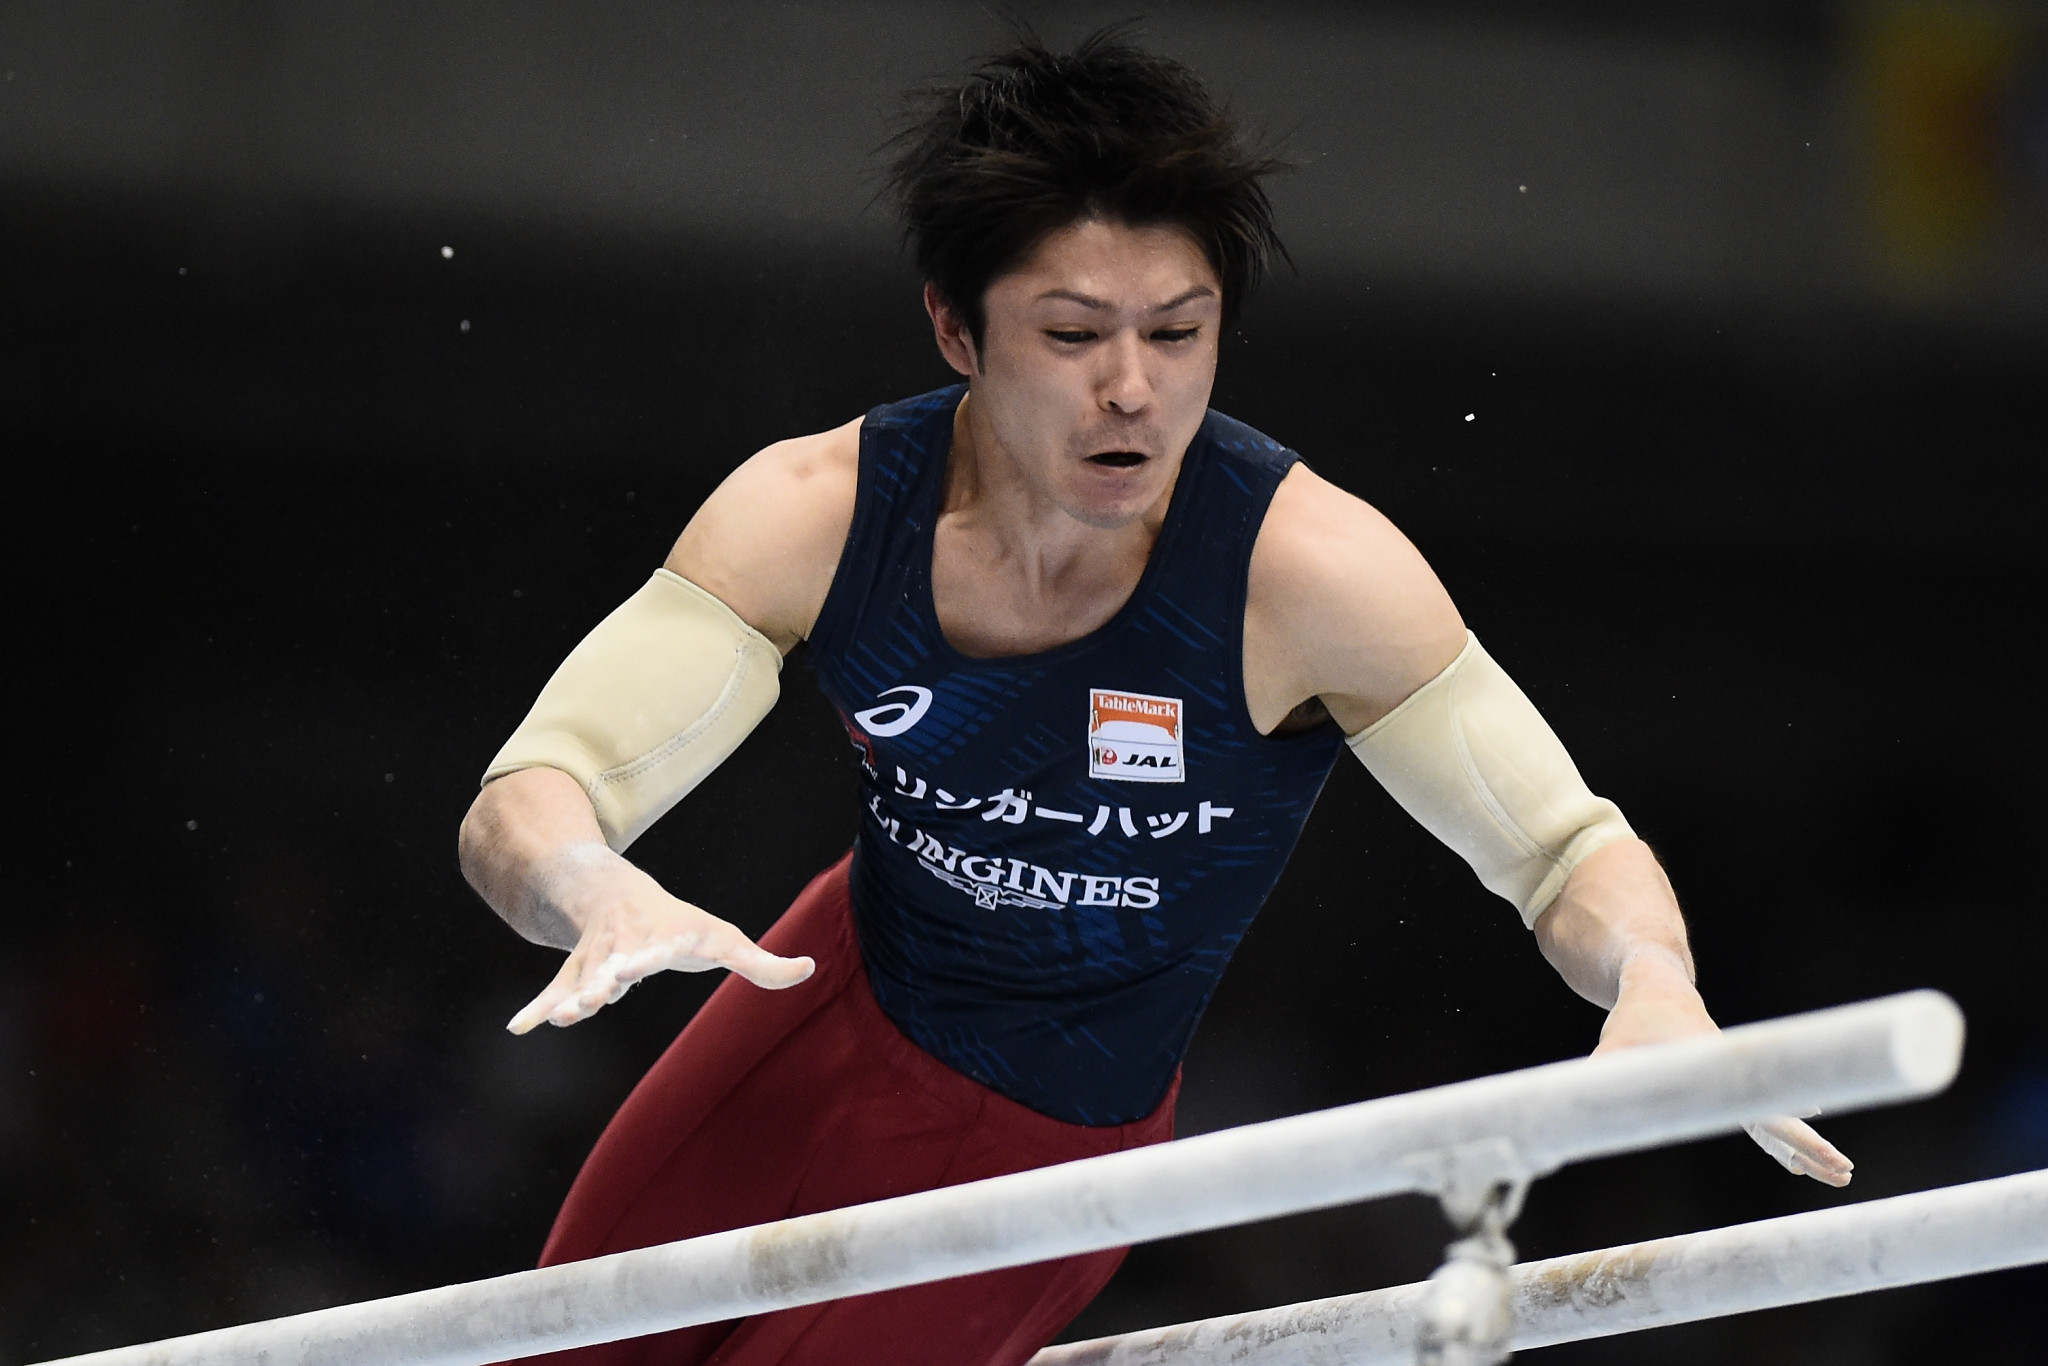 Uchimura and Akhaimova test positive for coronavirus prior to Tokyo gymnastics event